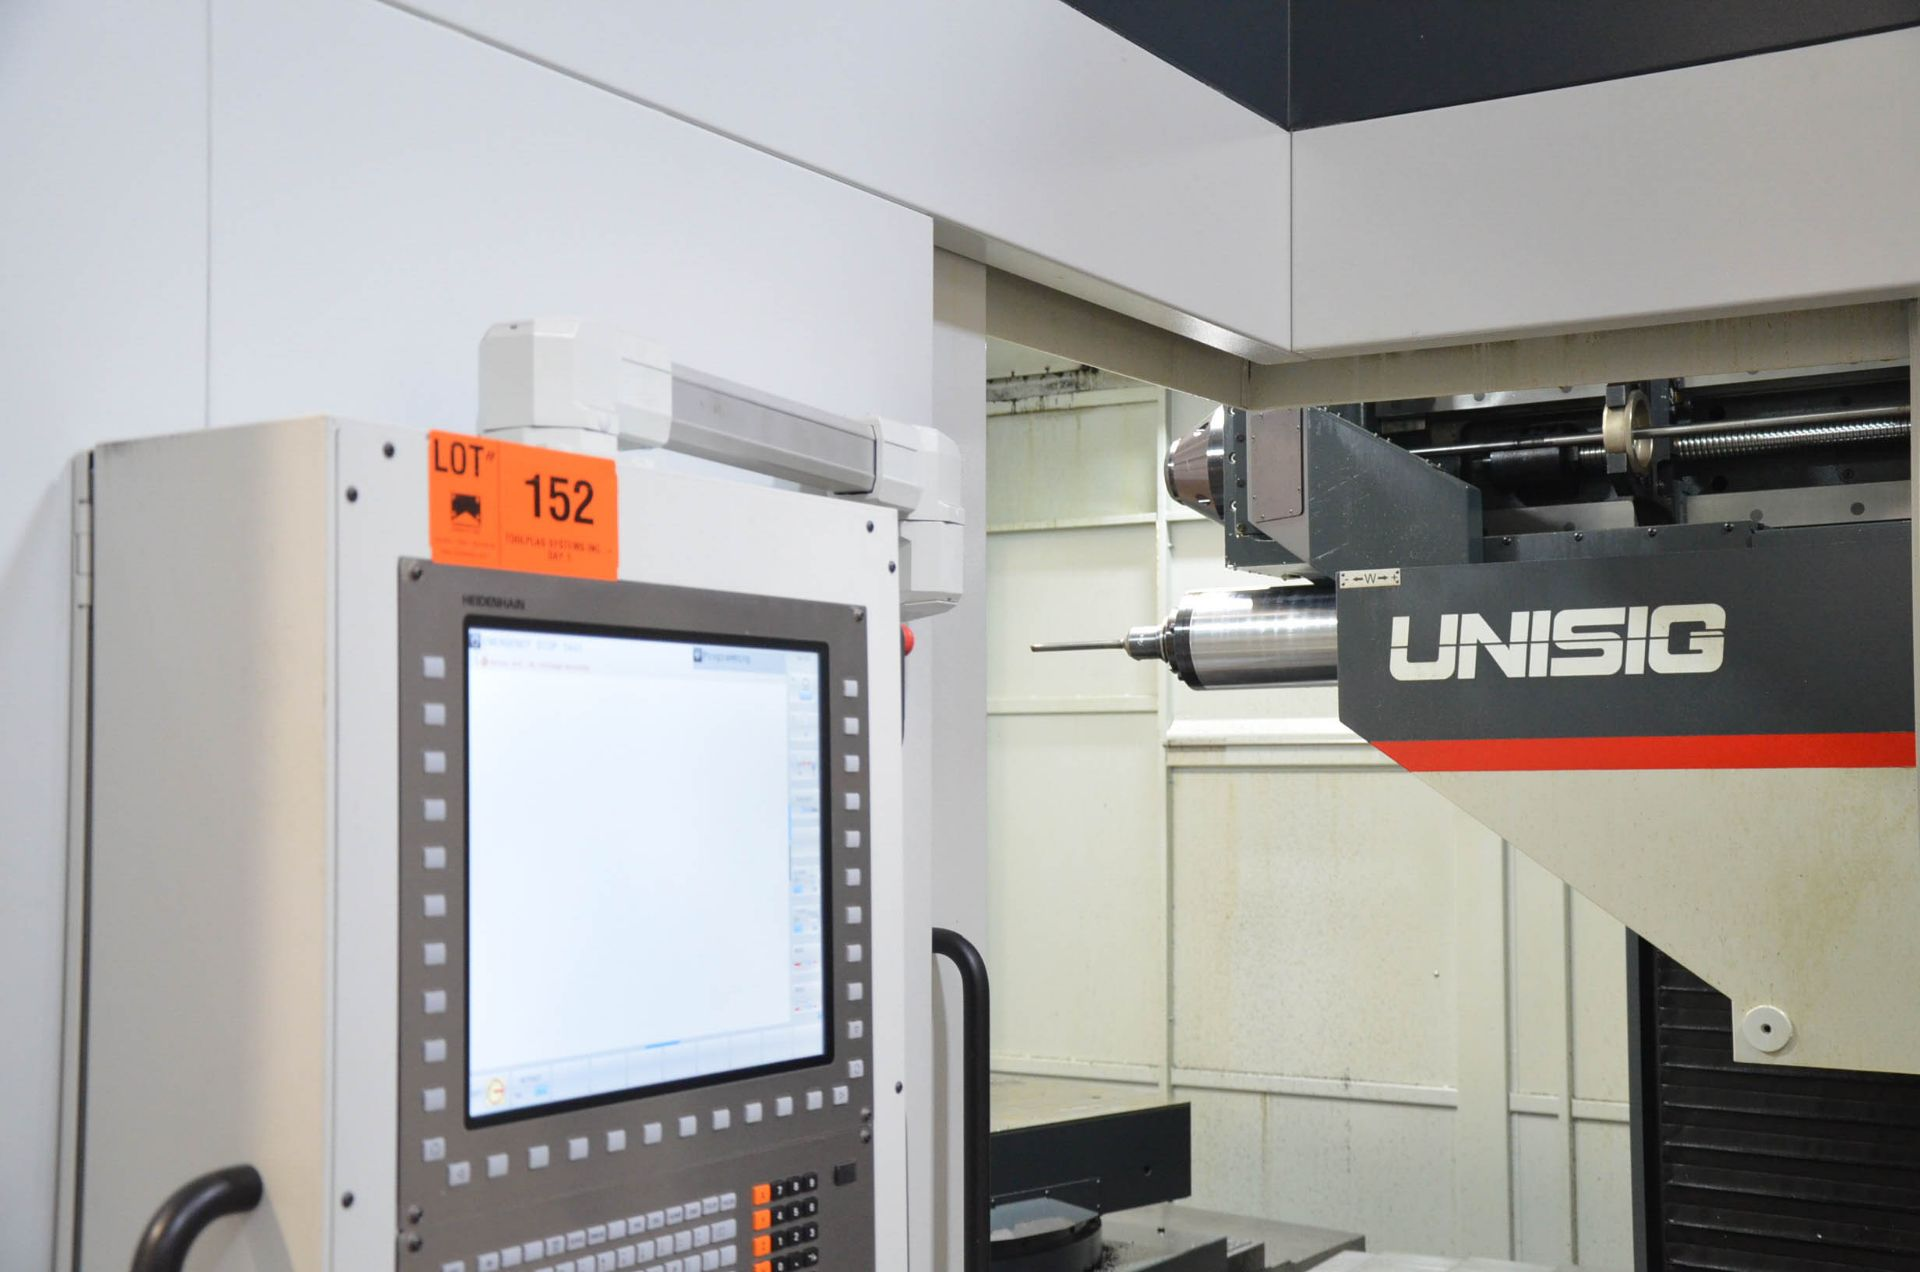 UNISIG (2020) USC-M38 5-AXIS COMBINATION CNC GUN DRILLING AND MILLING MACHINE WITH HEIDENHAIN ITNC - Image 6 of 17